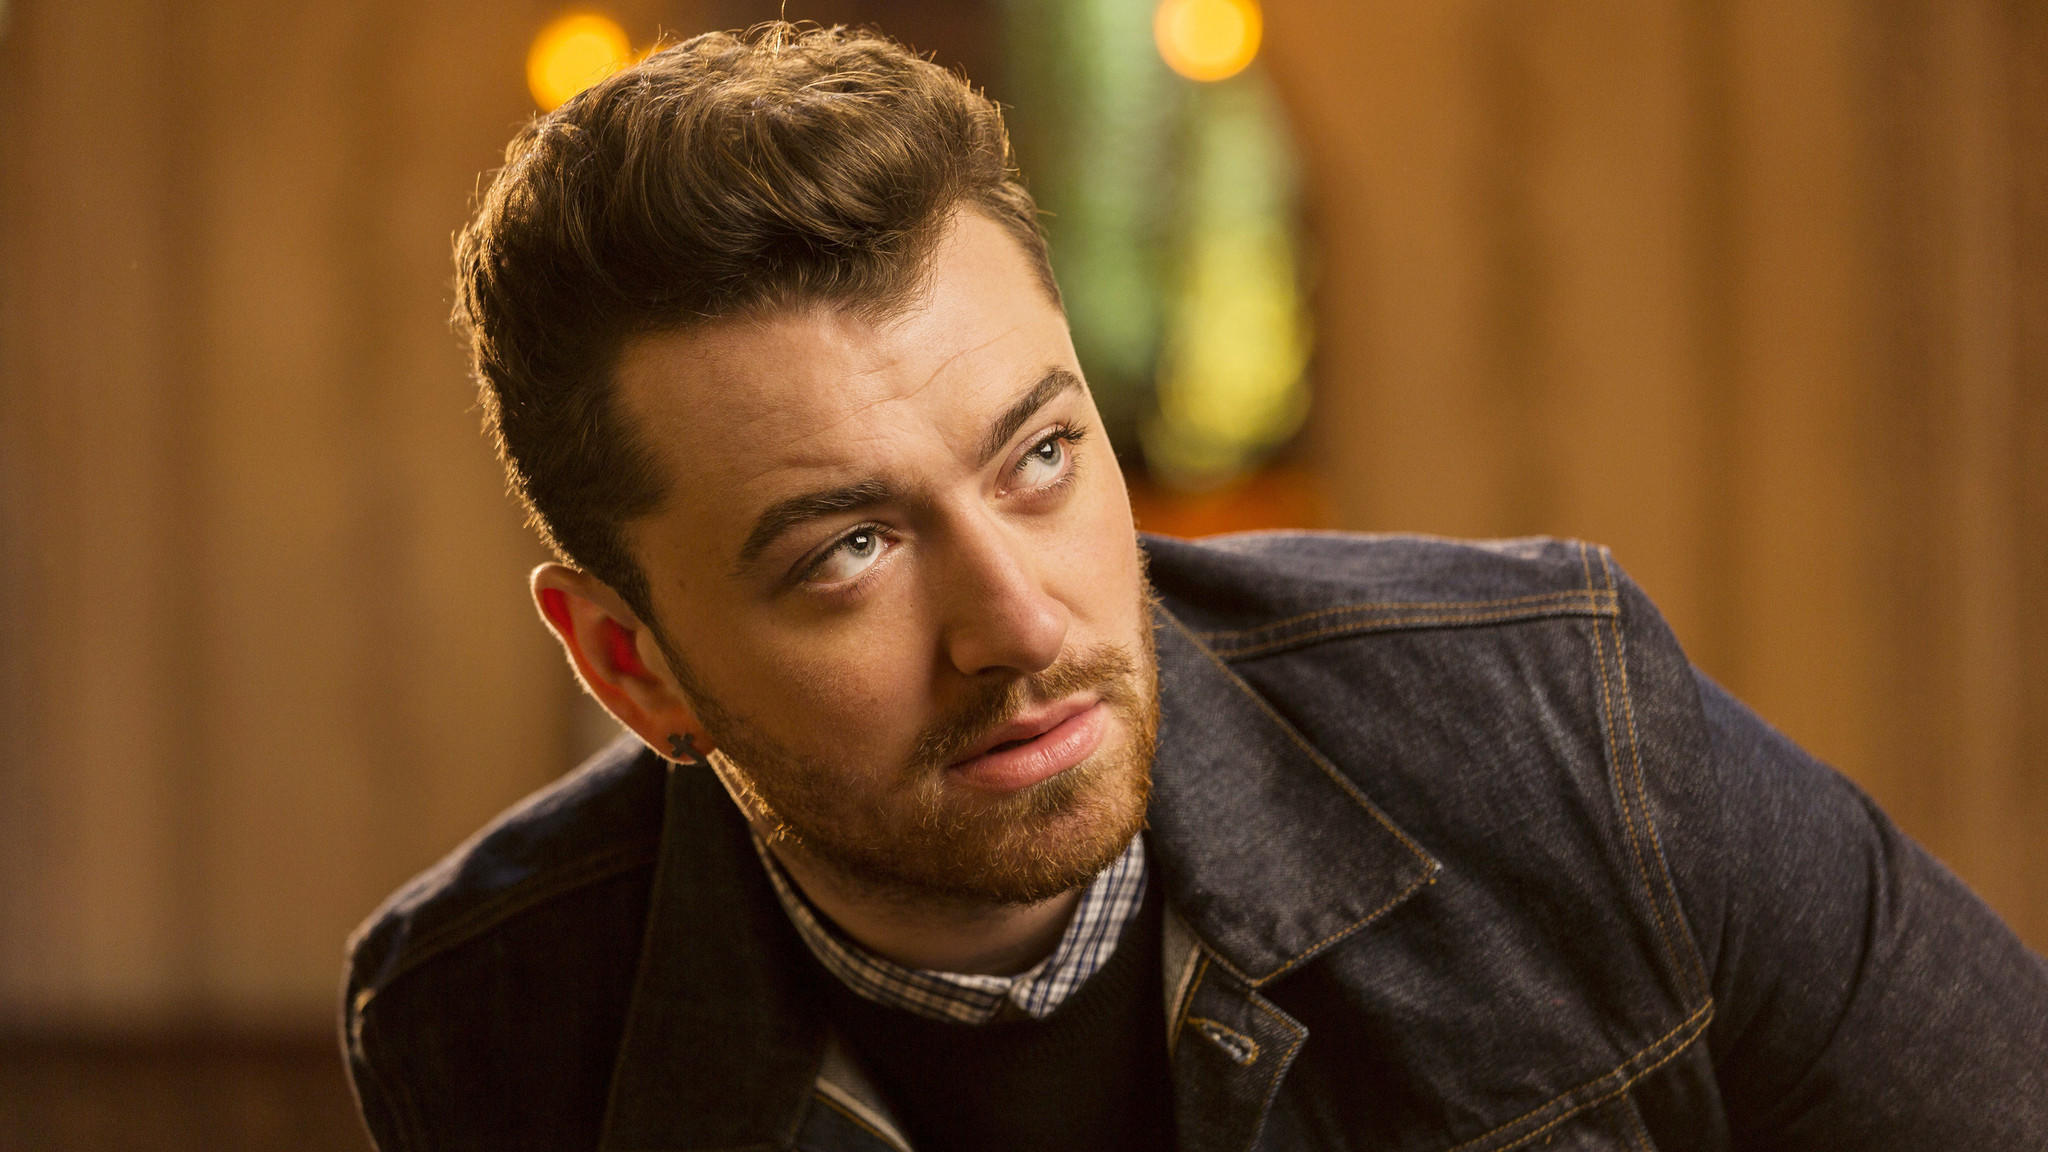 Resultado de imagem para sam smith the thrill of it all